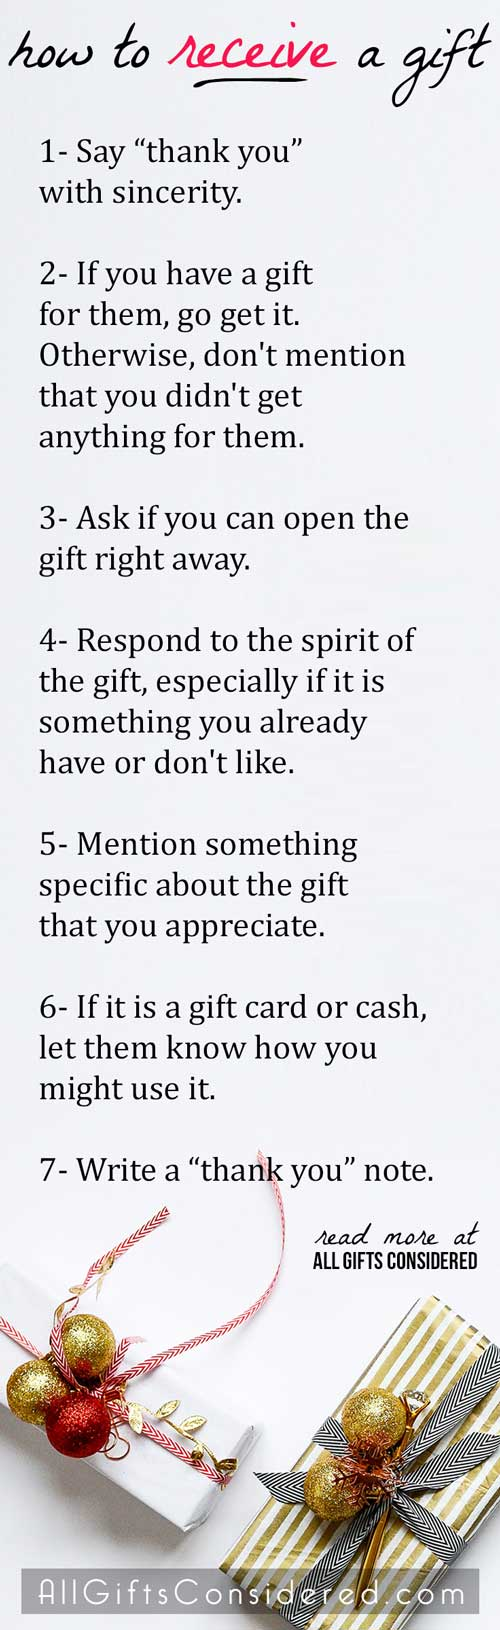 Gift Etiquette for When You Receive a Gift